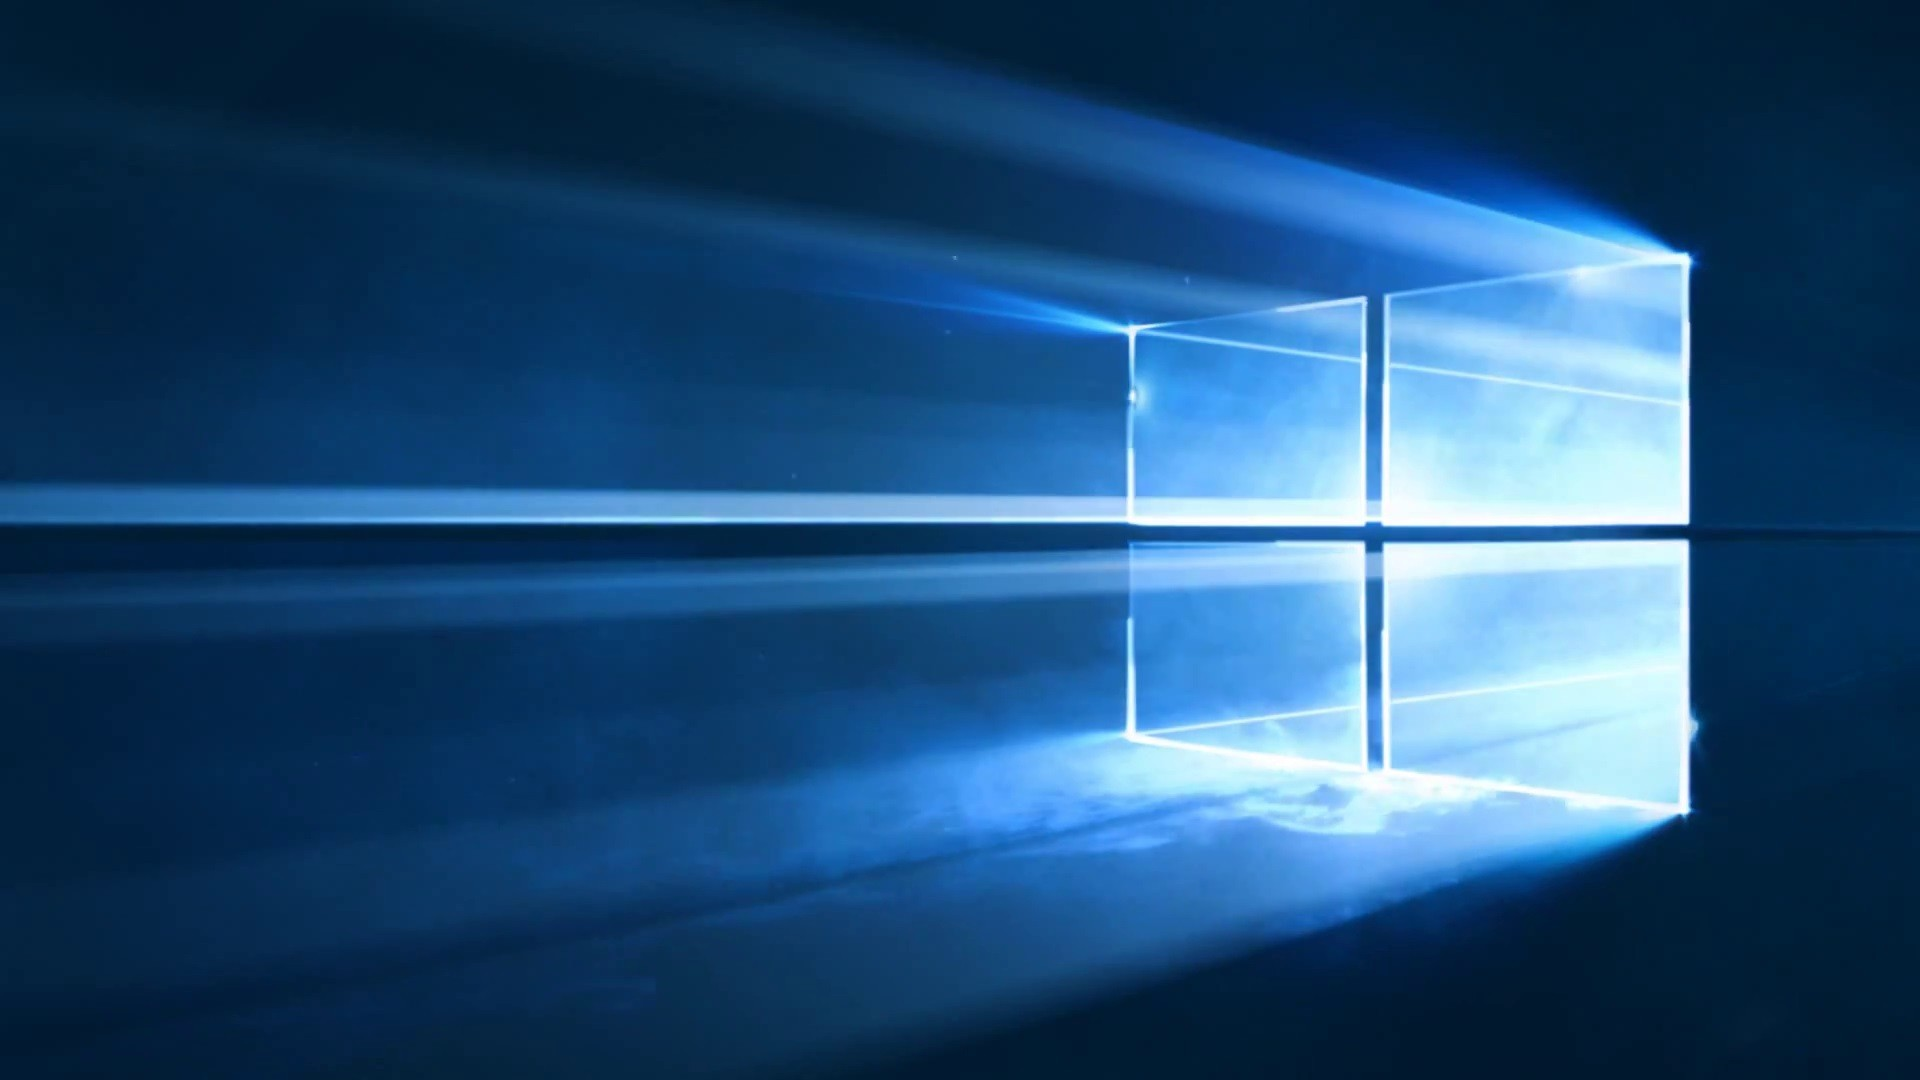 microsoft-reveals-the-official-windows-10-wallpaper-485311-